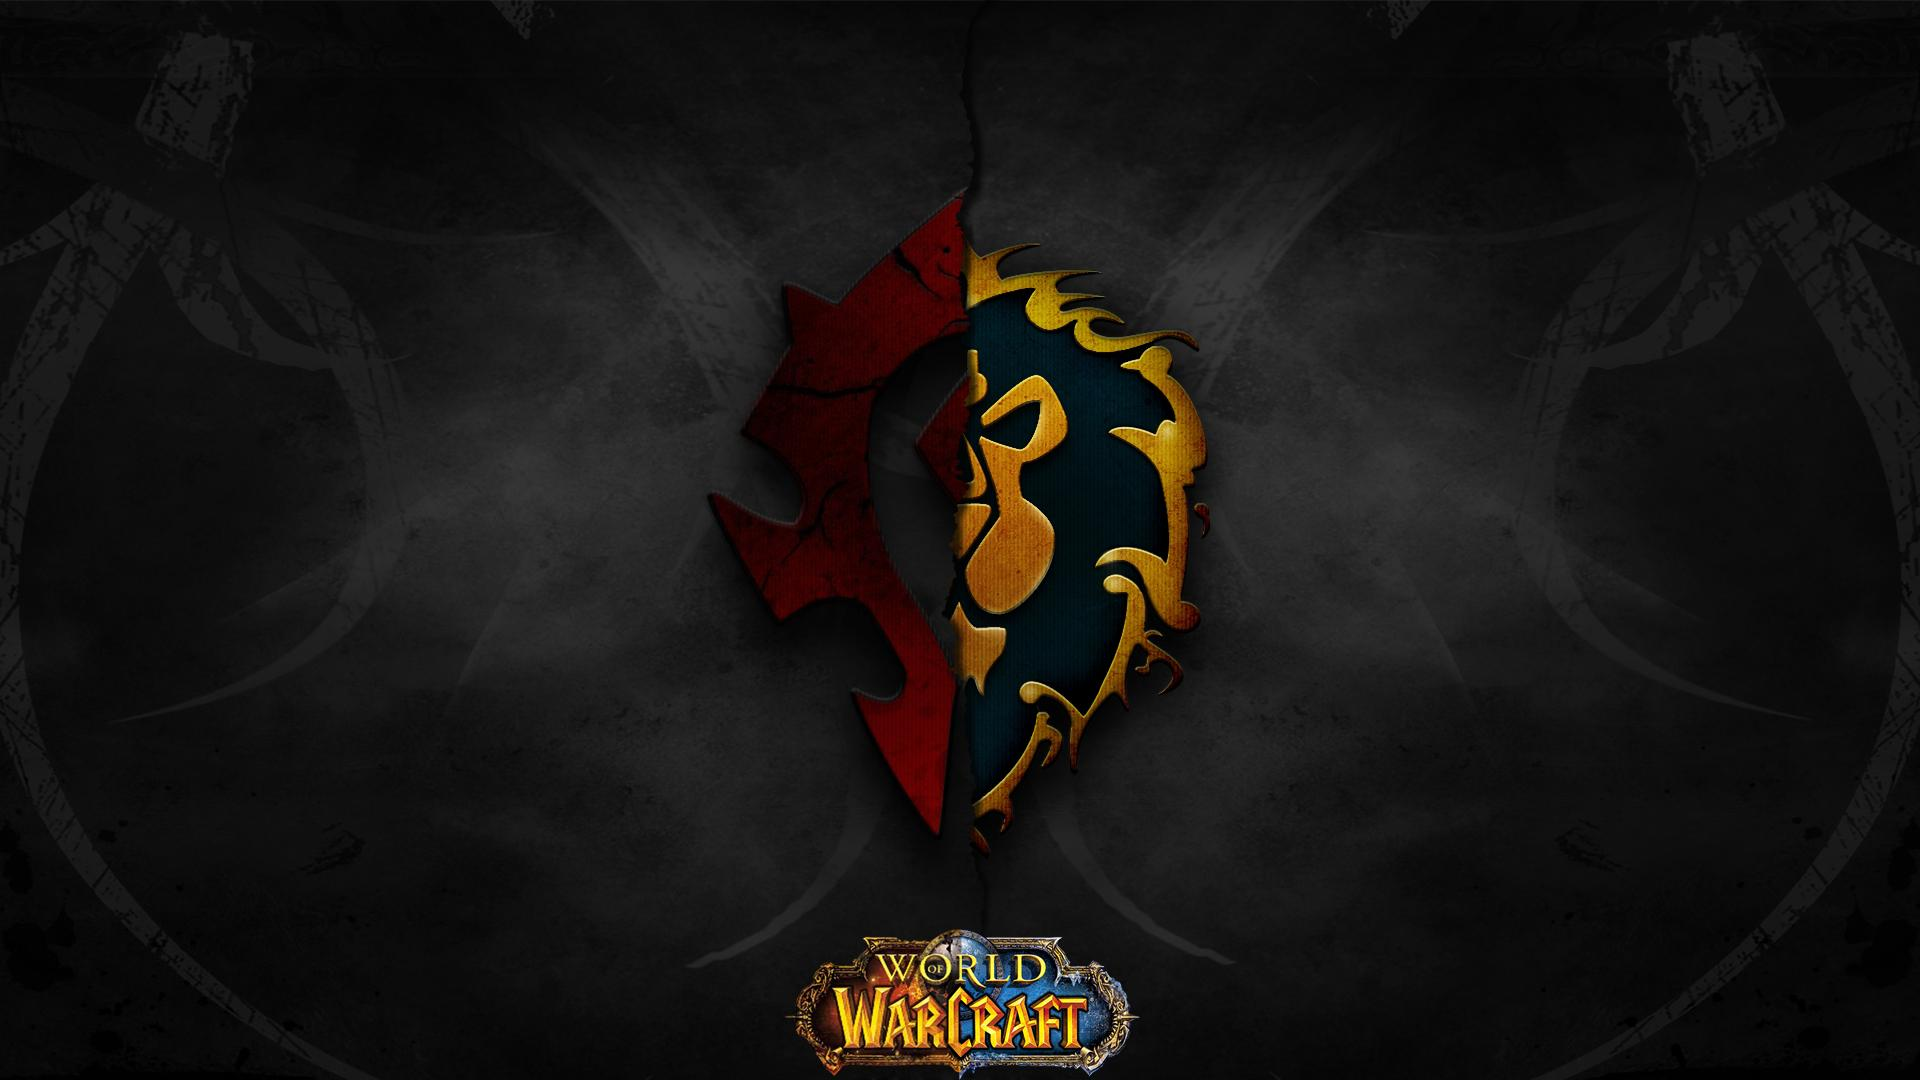 World of Warcraft FOR THE HORDE!